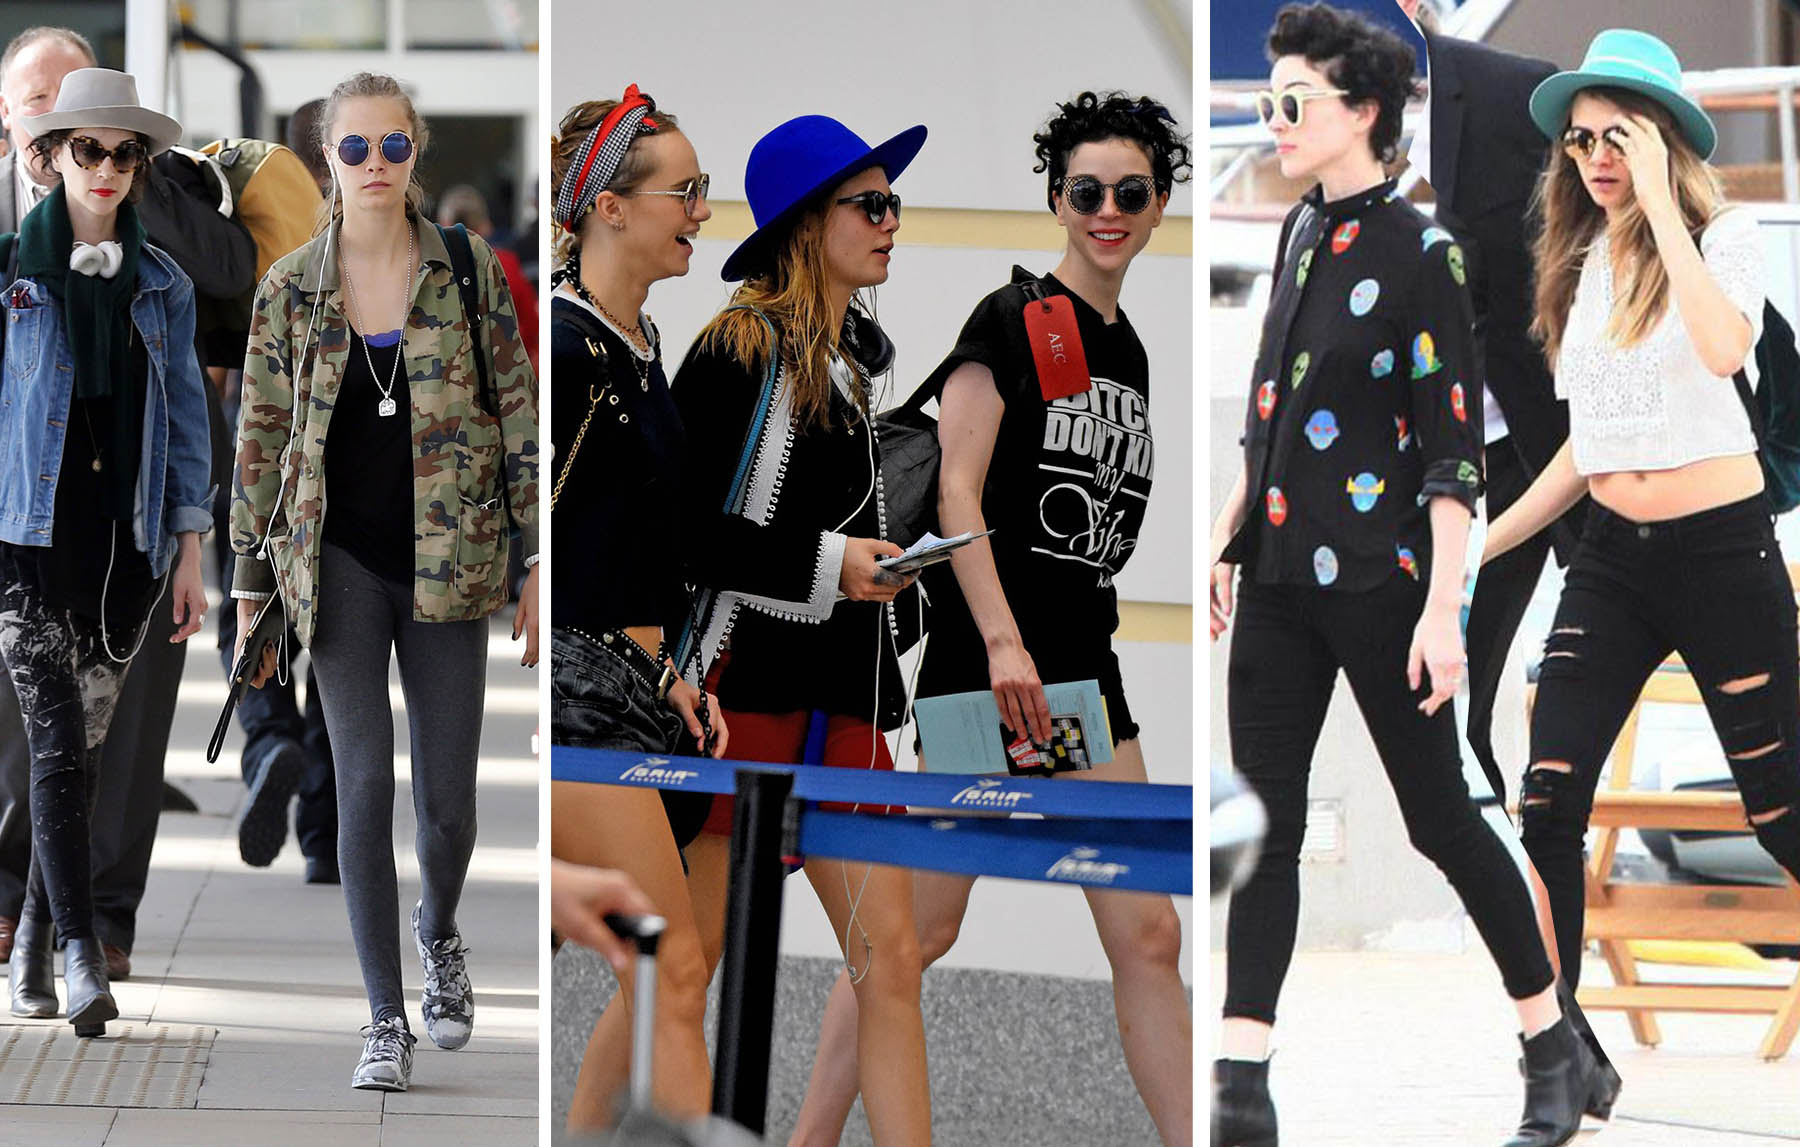 Cara Delevingne and St Vincent style